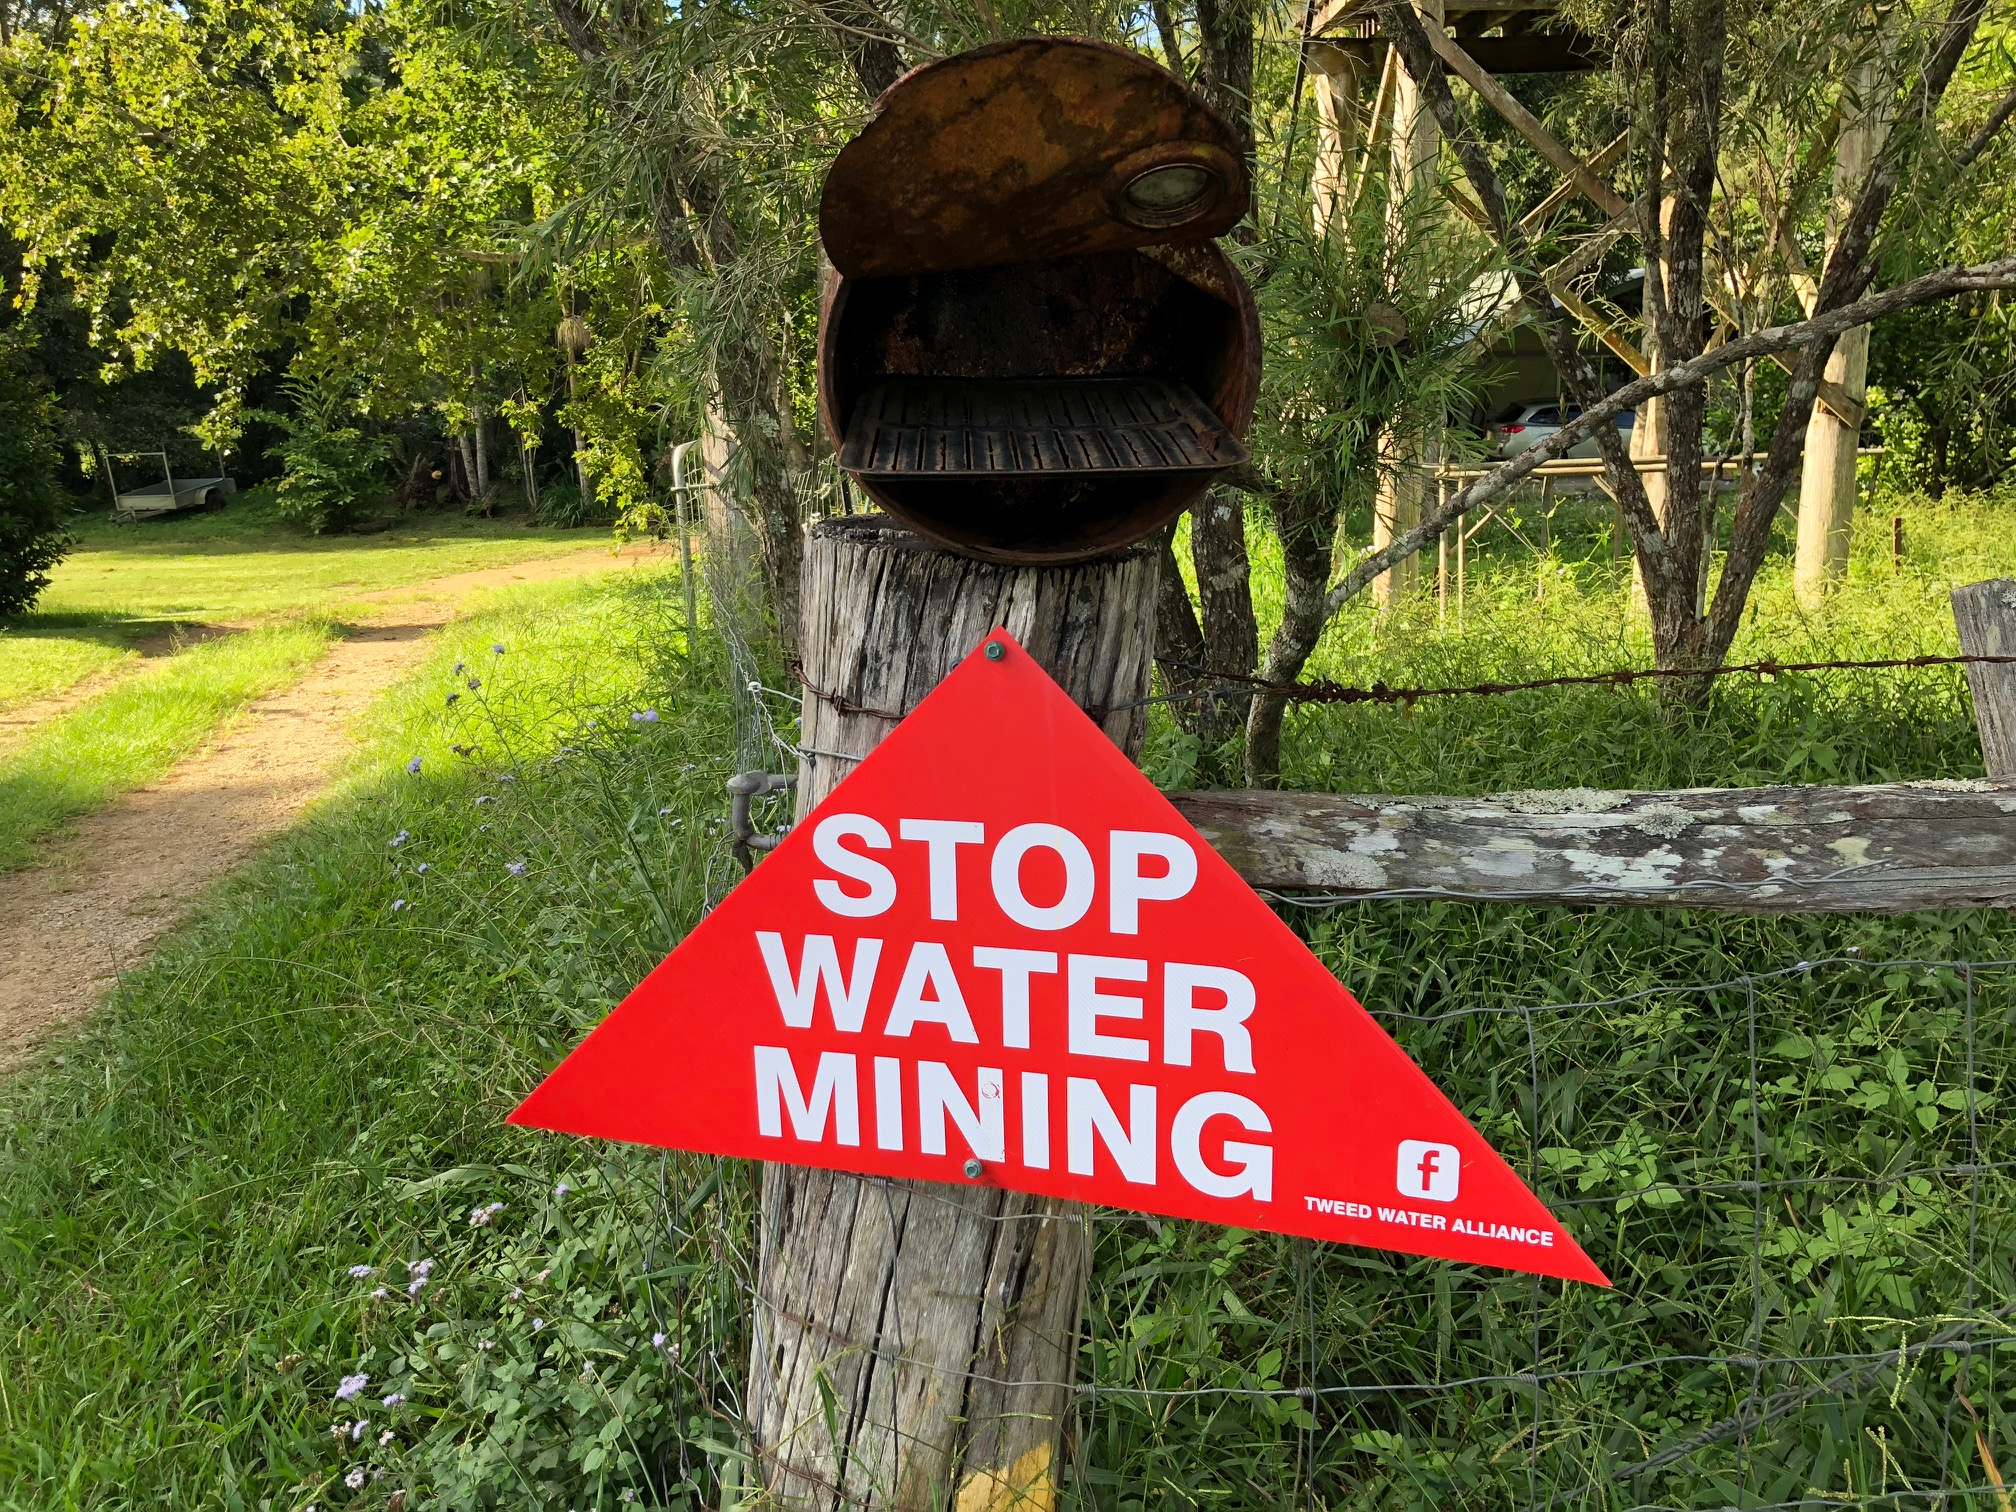 Greens call for halt to water mining in Tweed Valley - Dawn Walker MP